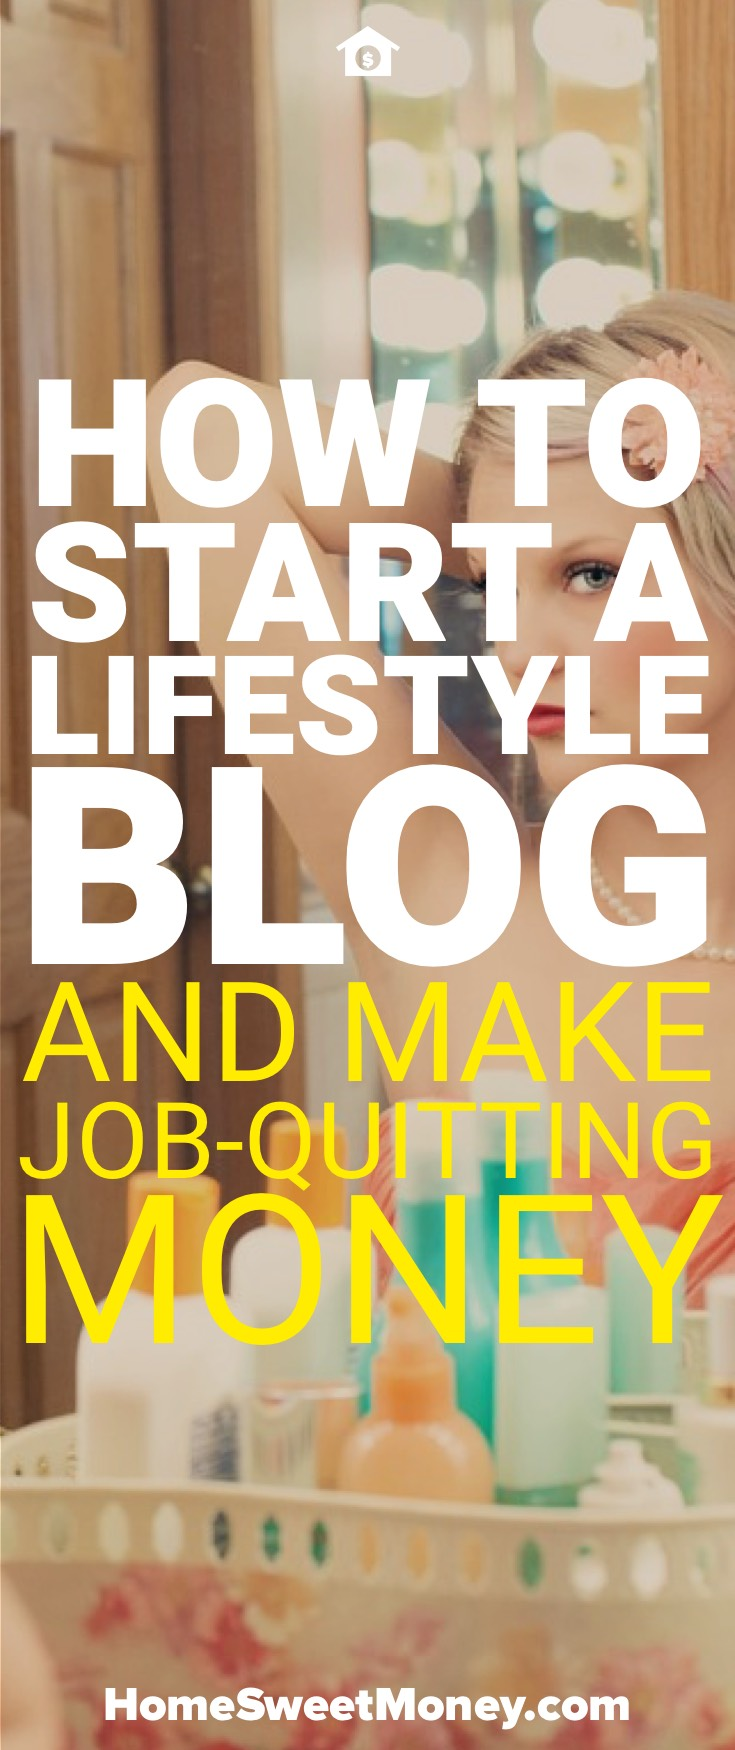 How to Start a Lifestyle Blog and Make Money From Home Every Month